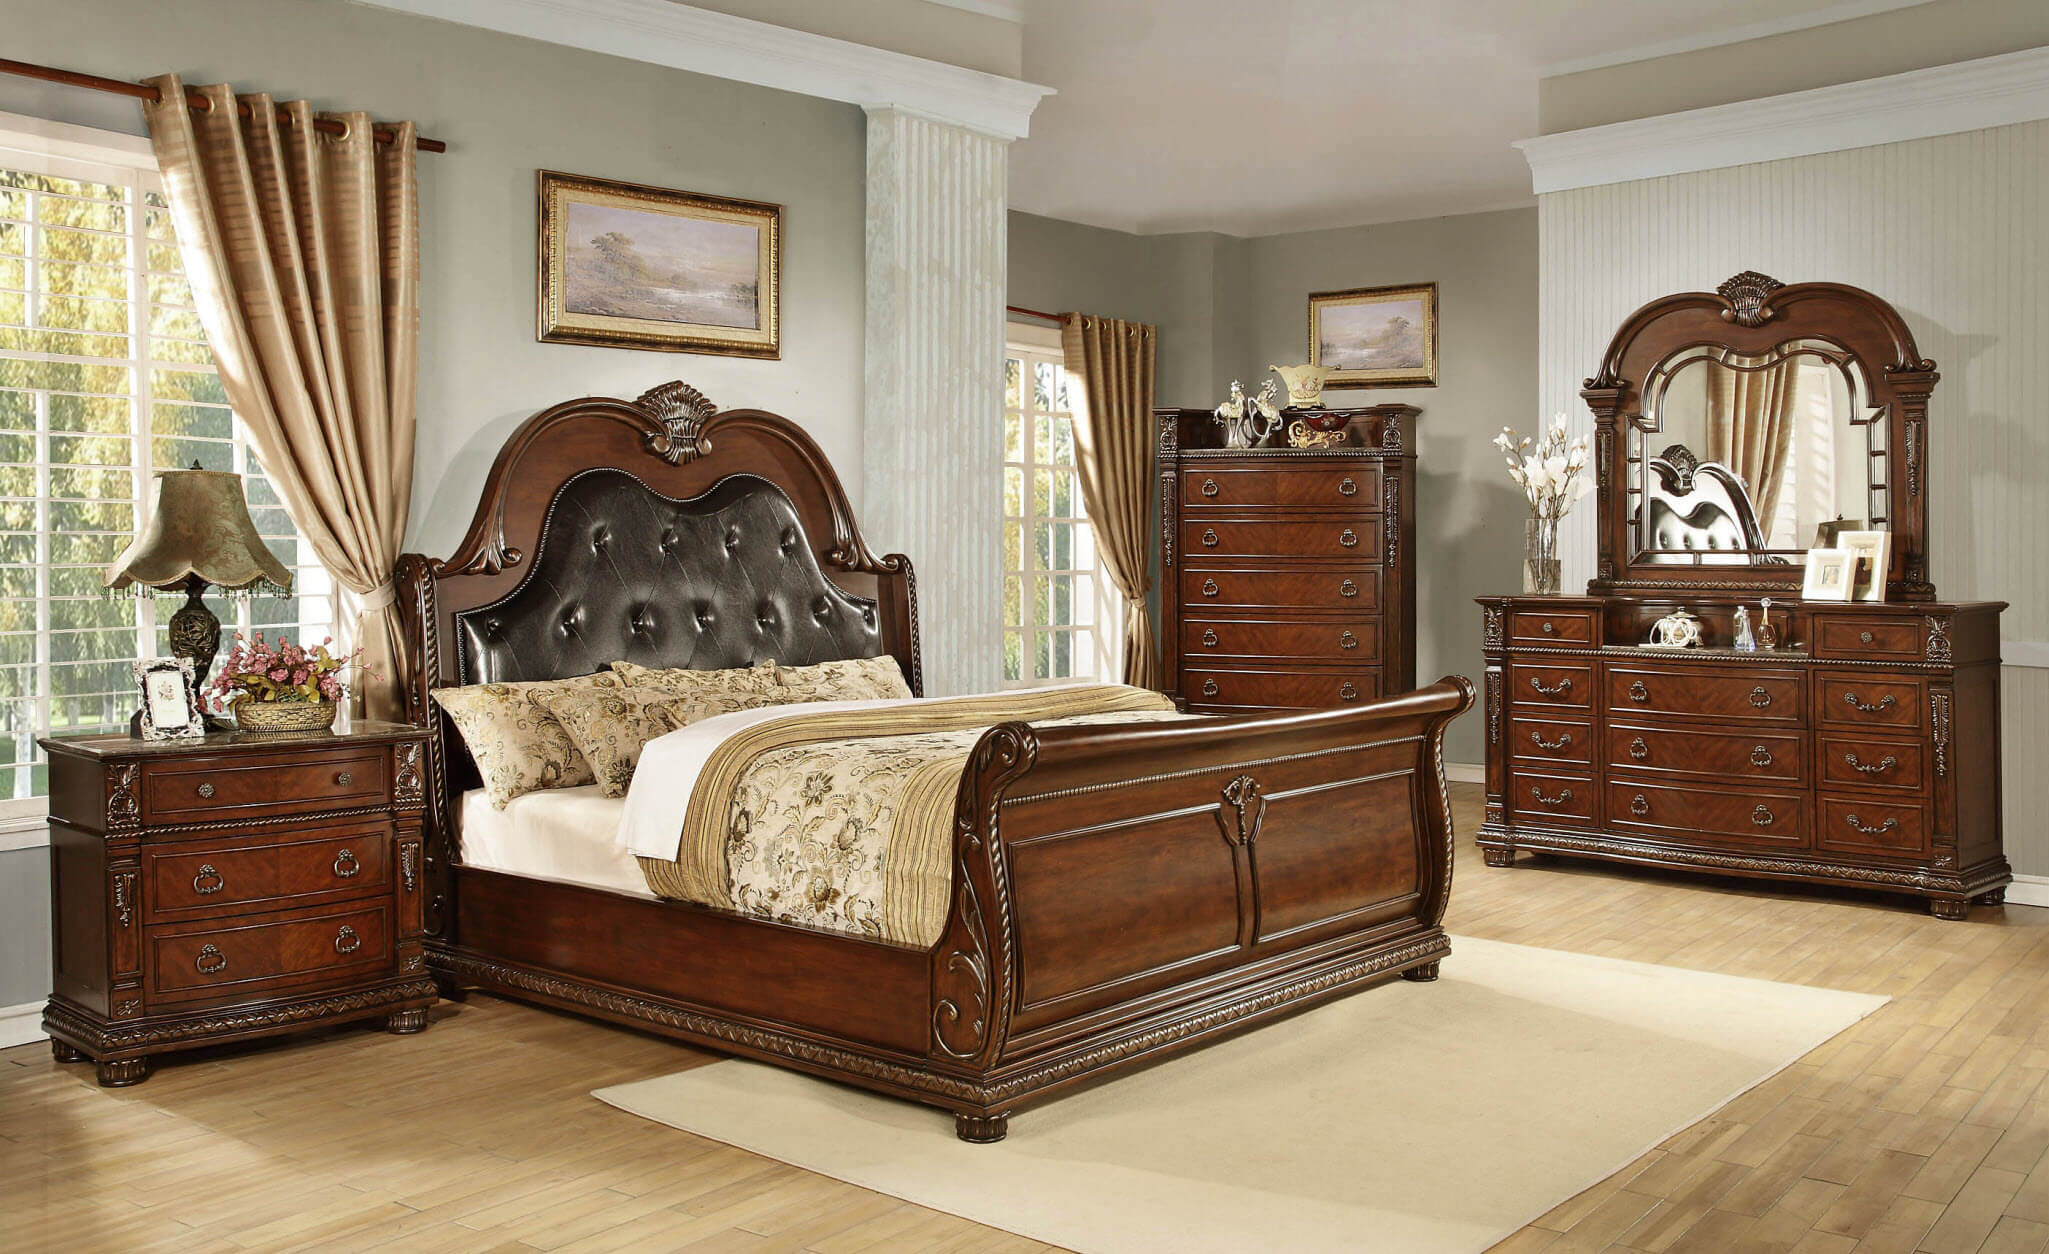 Awe Inspiring B718 Palace Marble Top Bedroom Set By Global Trading Home Interior And Landscaping Spoatsignezvosmurscom